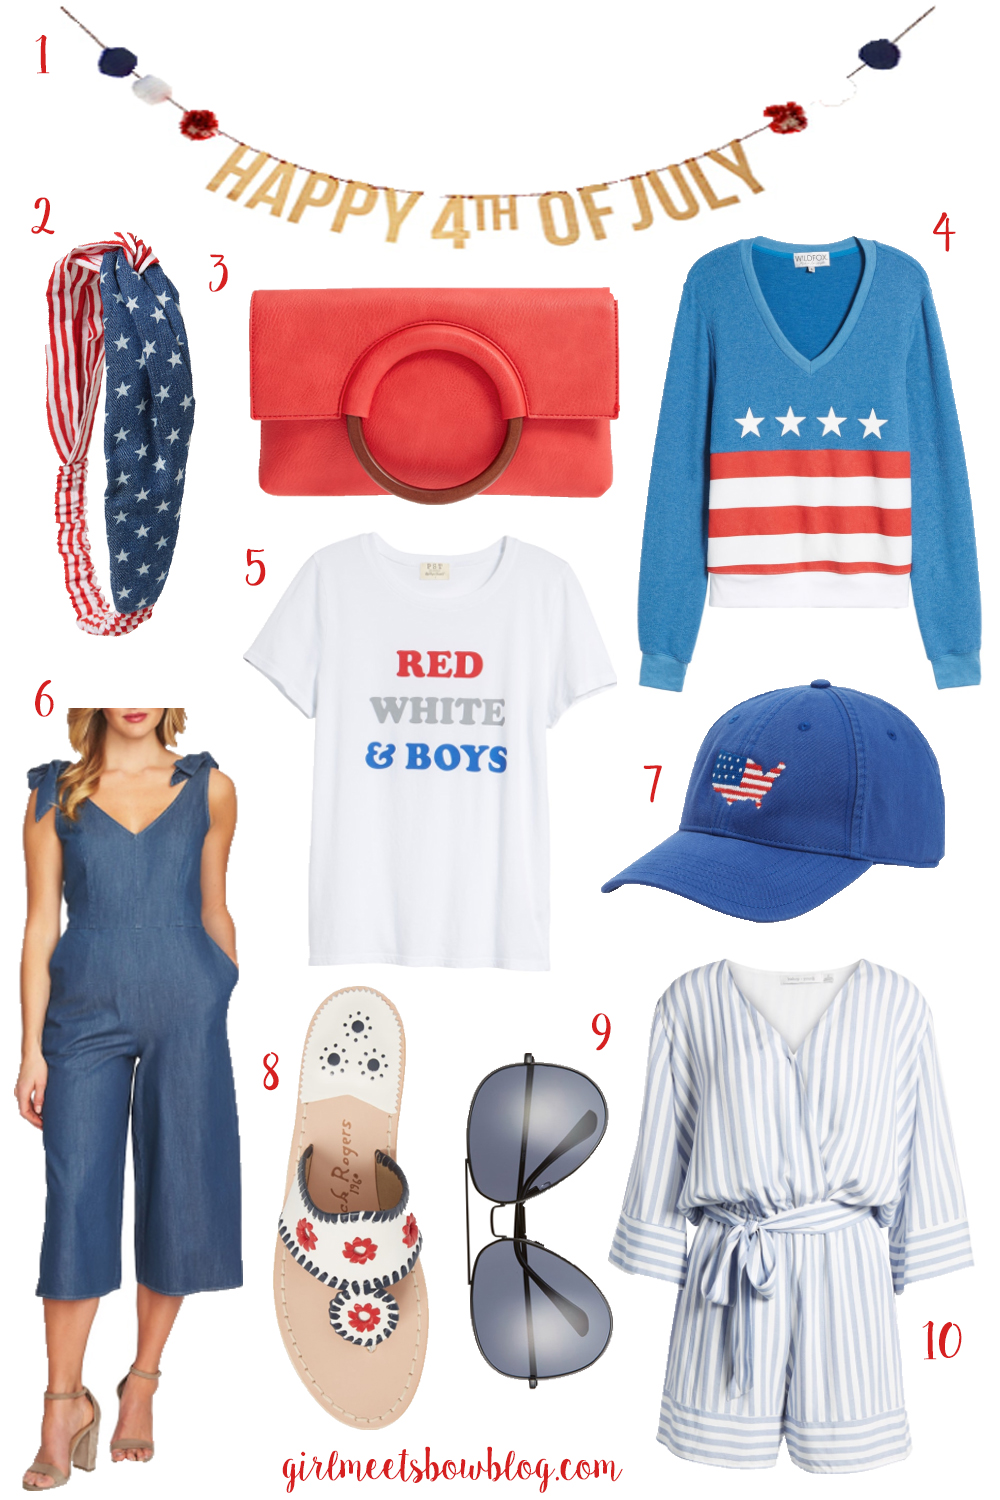 Red, White, & Blue: 4th of July Style